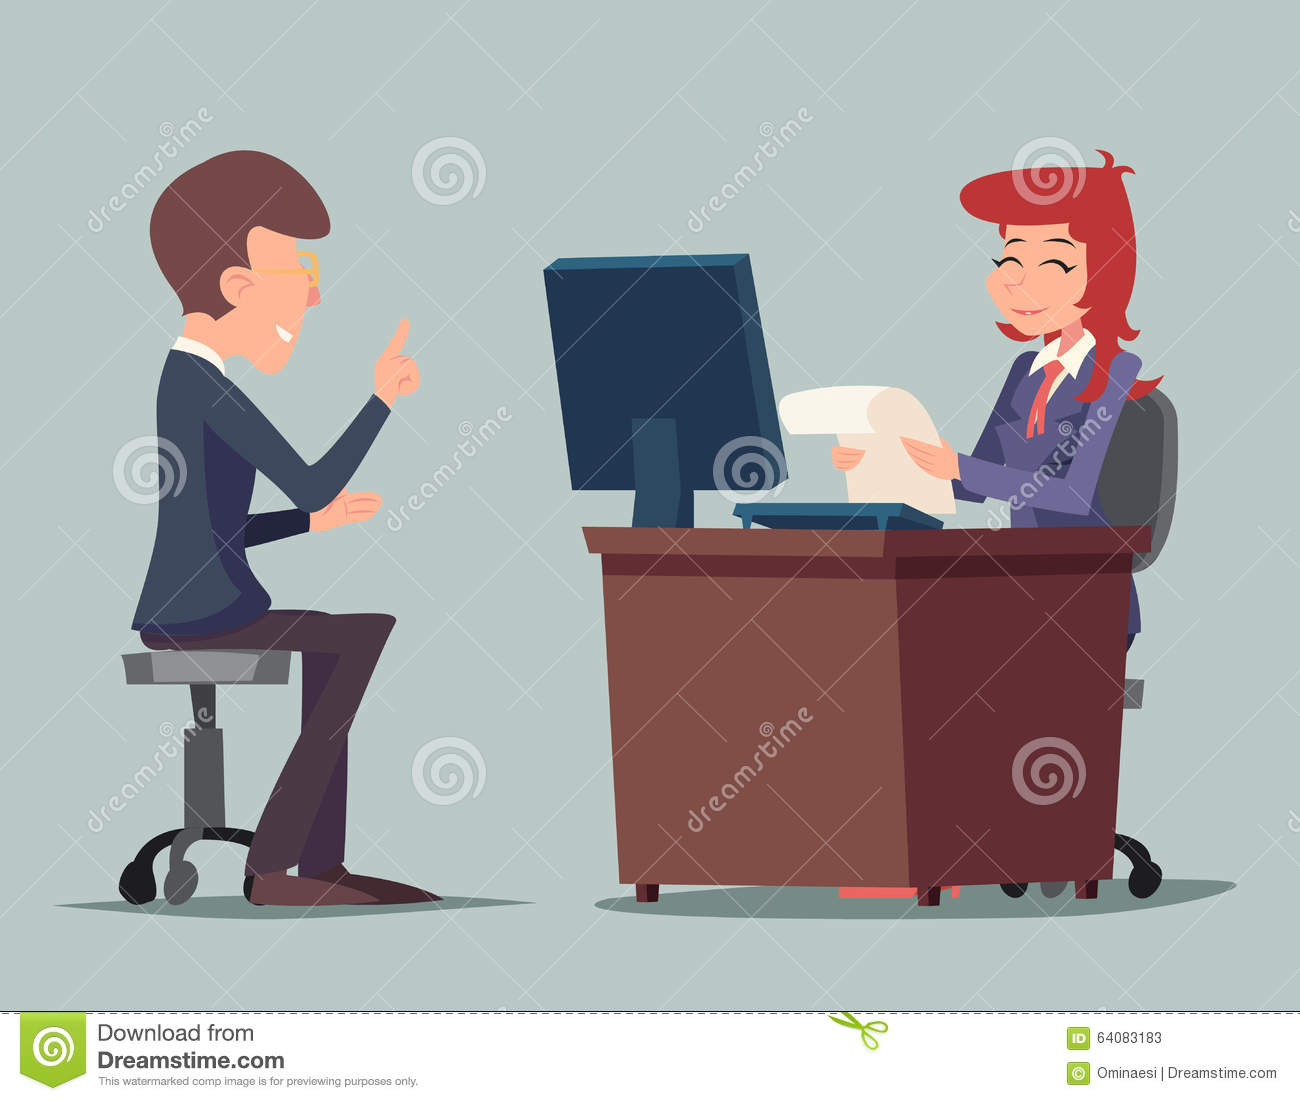 essay dialogue between two people interview job How to conduct a job interview - conducting a job interview is the most  an interview as defined is a conversation between two people  interview essay.